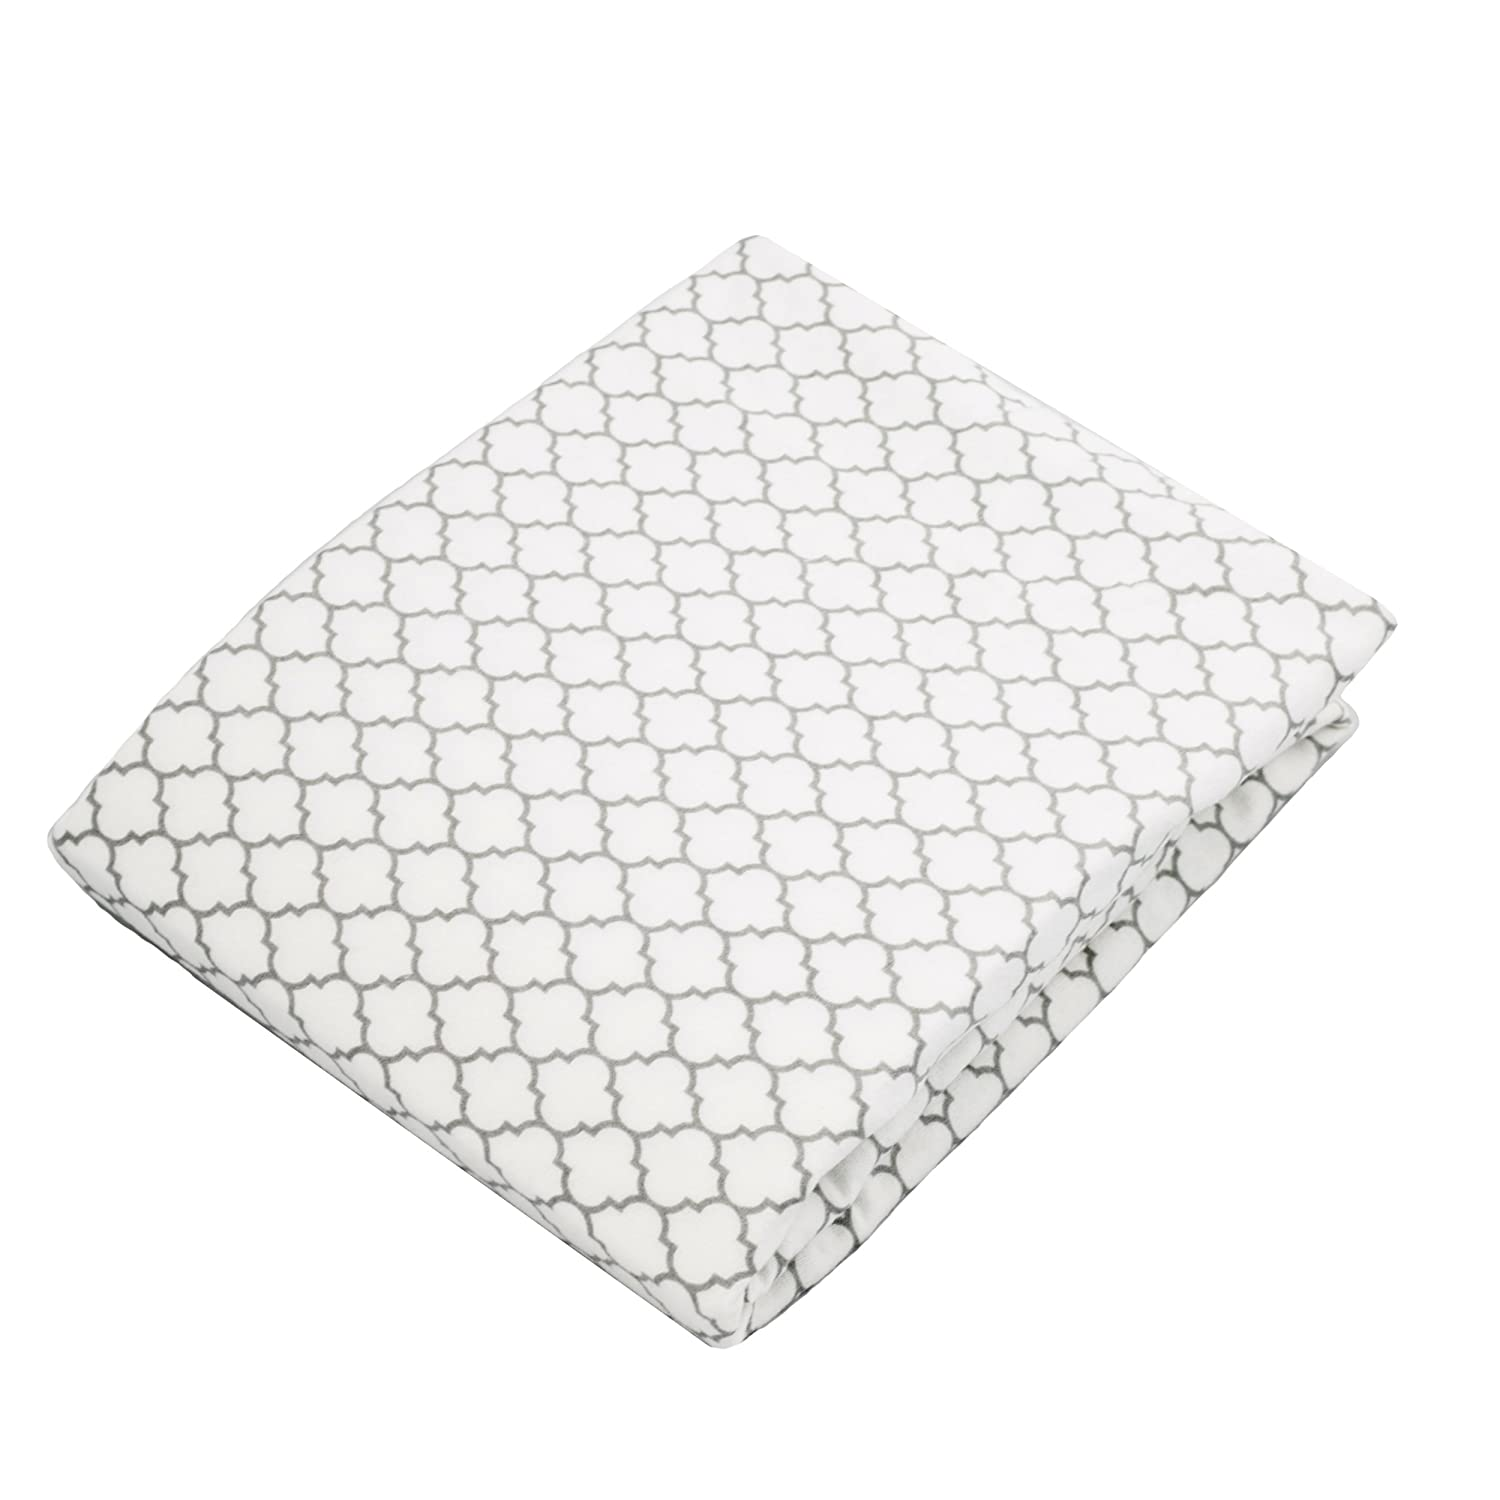 Kushies Changing Pad Cover With Safety Straps, Soft 100% Breathable Cotton Flannel, Made in Canada, White/Grey Ornament Kushies Baby S347-537